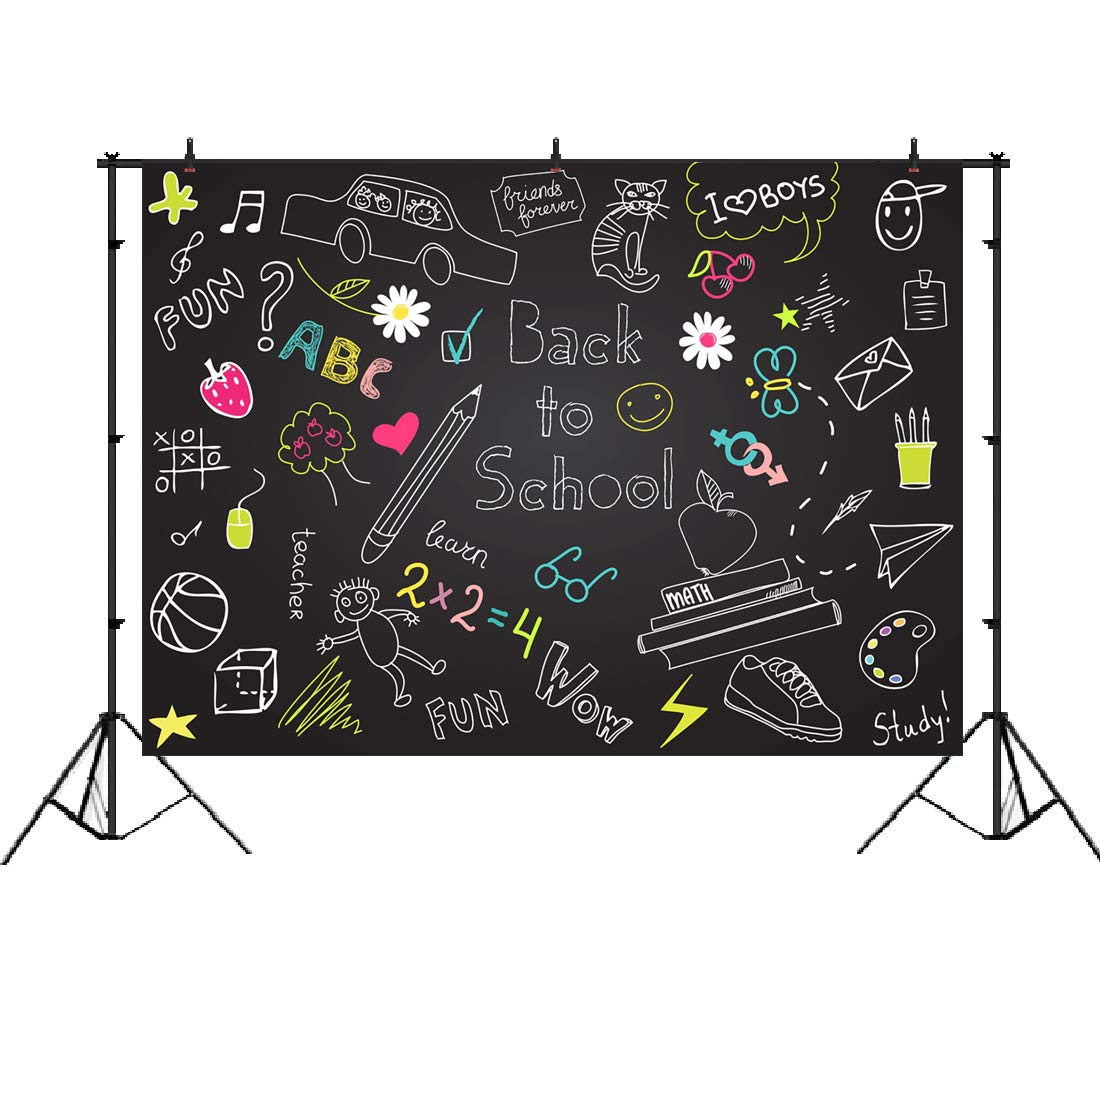 Back to School Backdrop Blackboard Colorful Chalk Drawing Classroom Background for Kids Back to School Theme Party Decorations Photography Backdrops 7x5ft